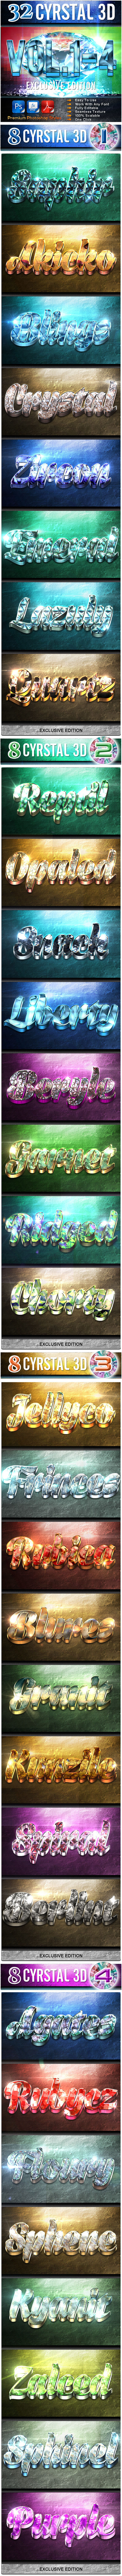 32 Cyrstal 3D_Bundle (Vol.1-4) - Text Effects Styles